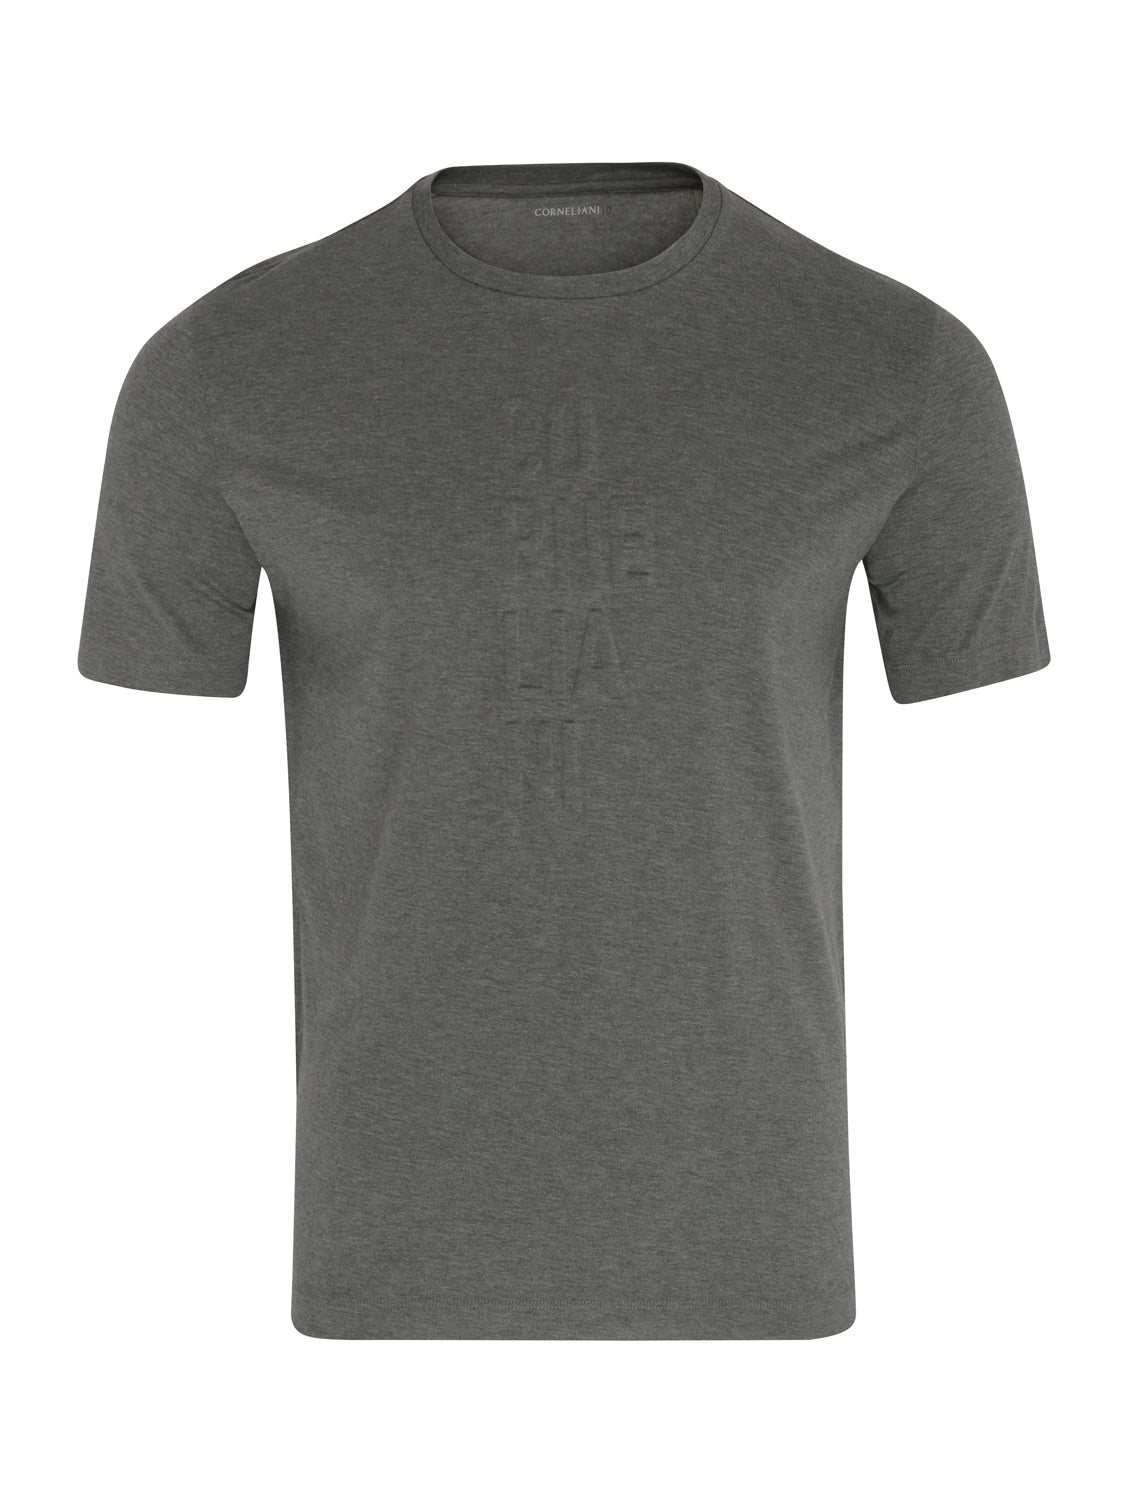 Corneliani 3D Branded T-Shirt (Grey) - Union 22